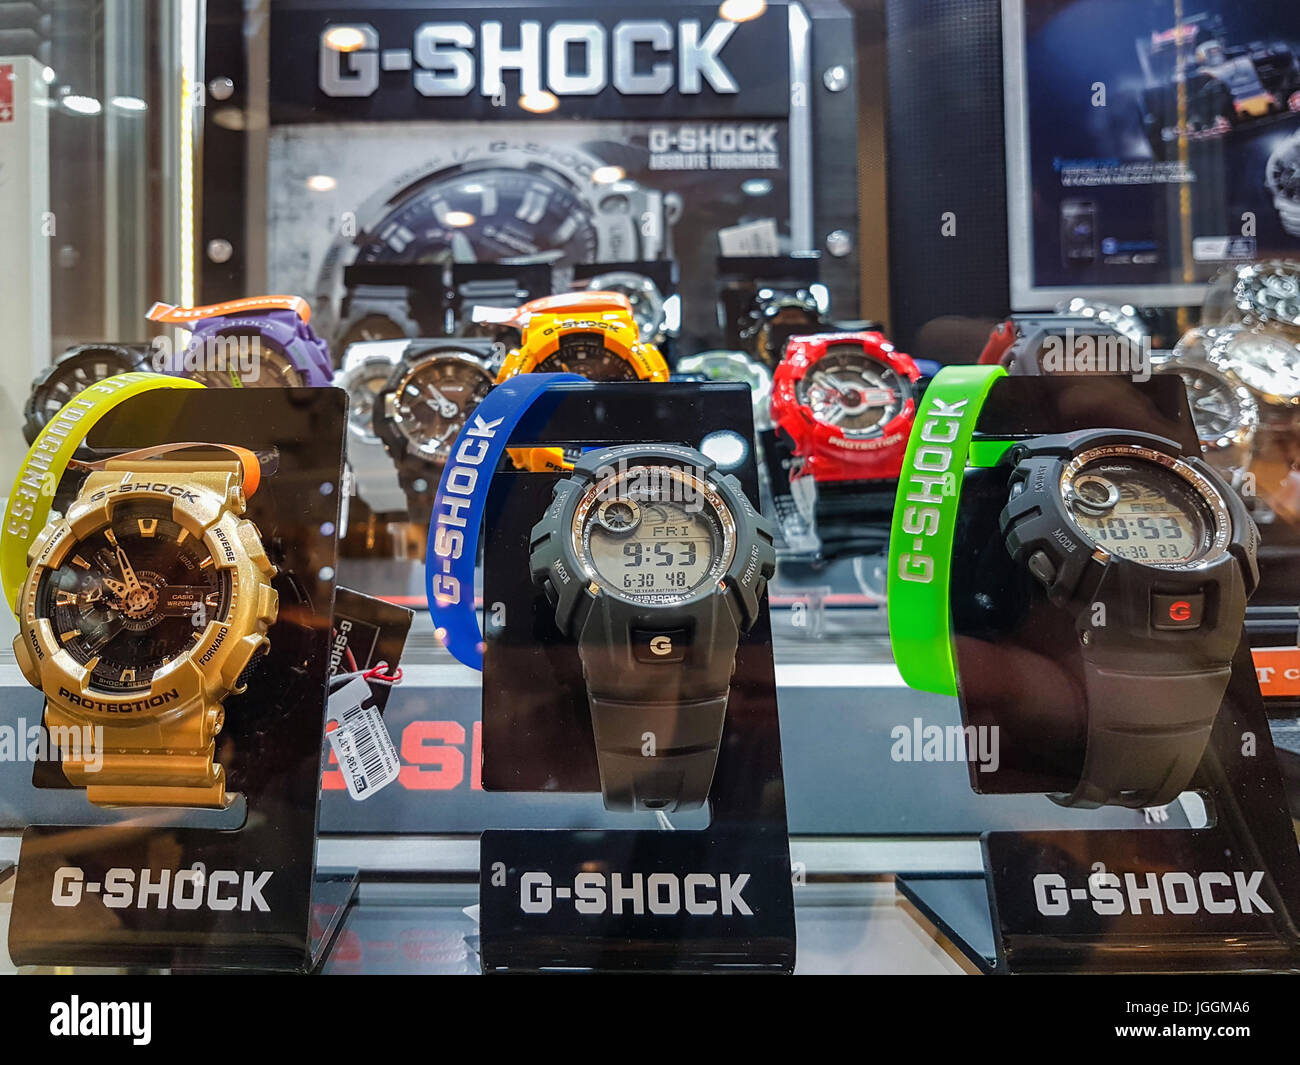 Nowy Sacz, Poland - June 30, 2017: Casio G-Shock watches for sale in a shop window. G-Shock is a line of watches - Stock Image